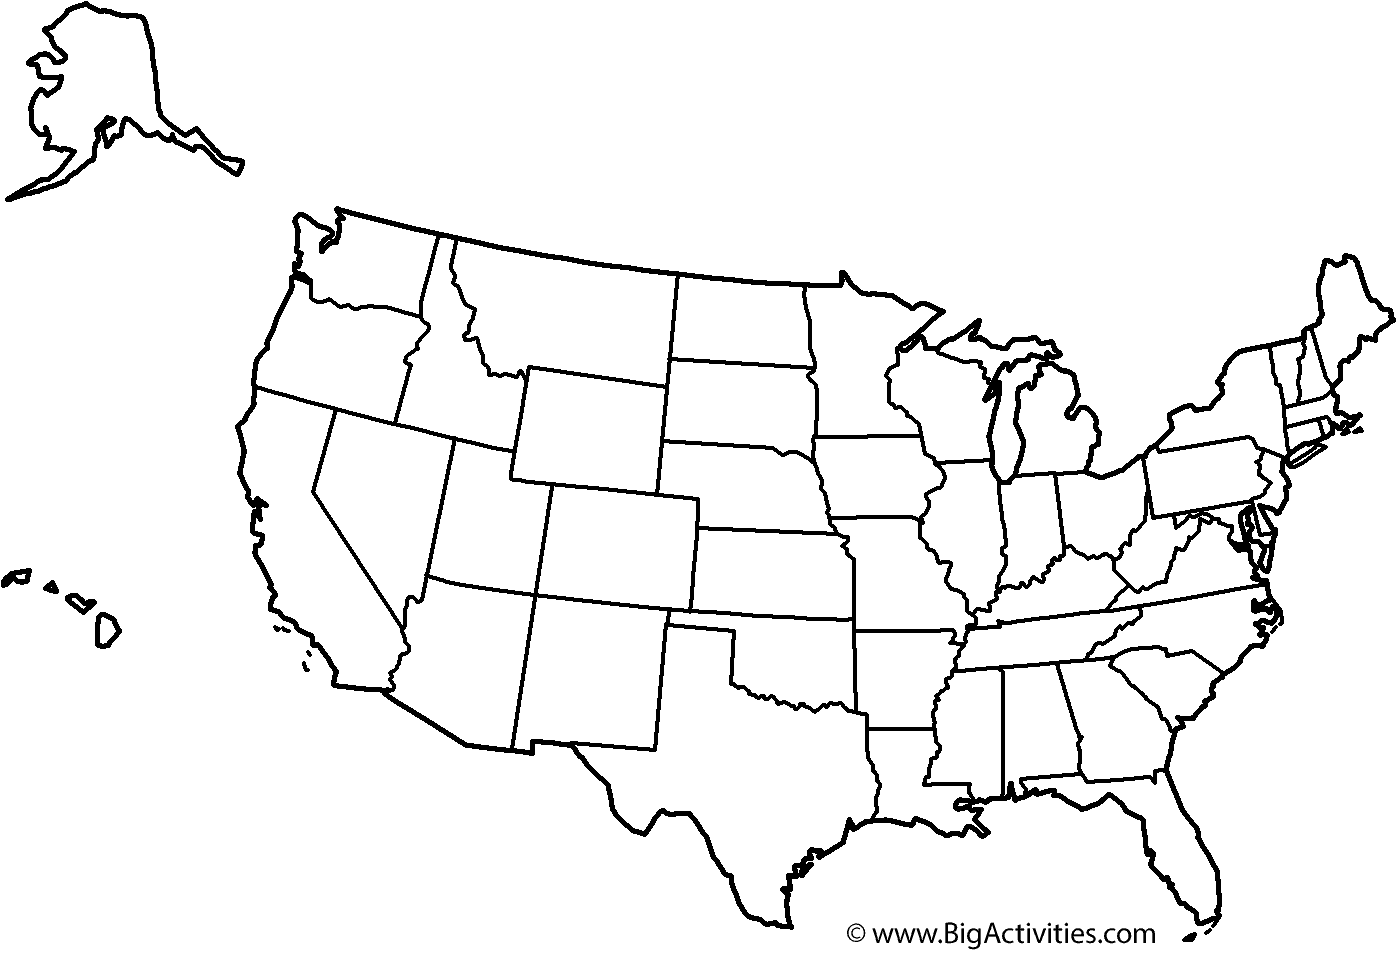 Map Of The United States With Title And States